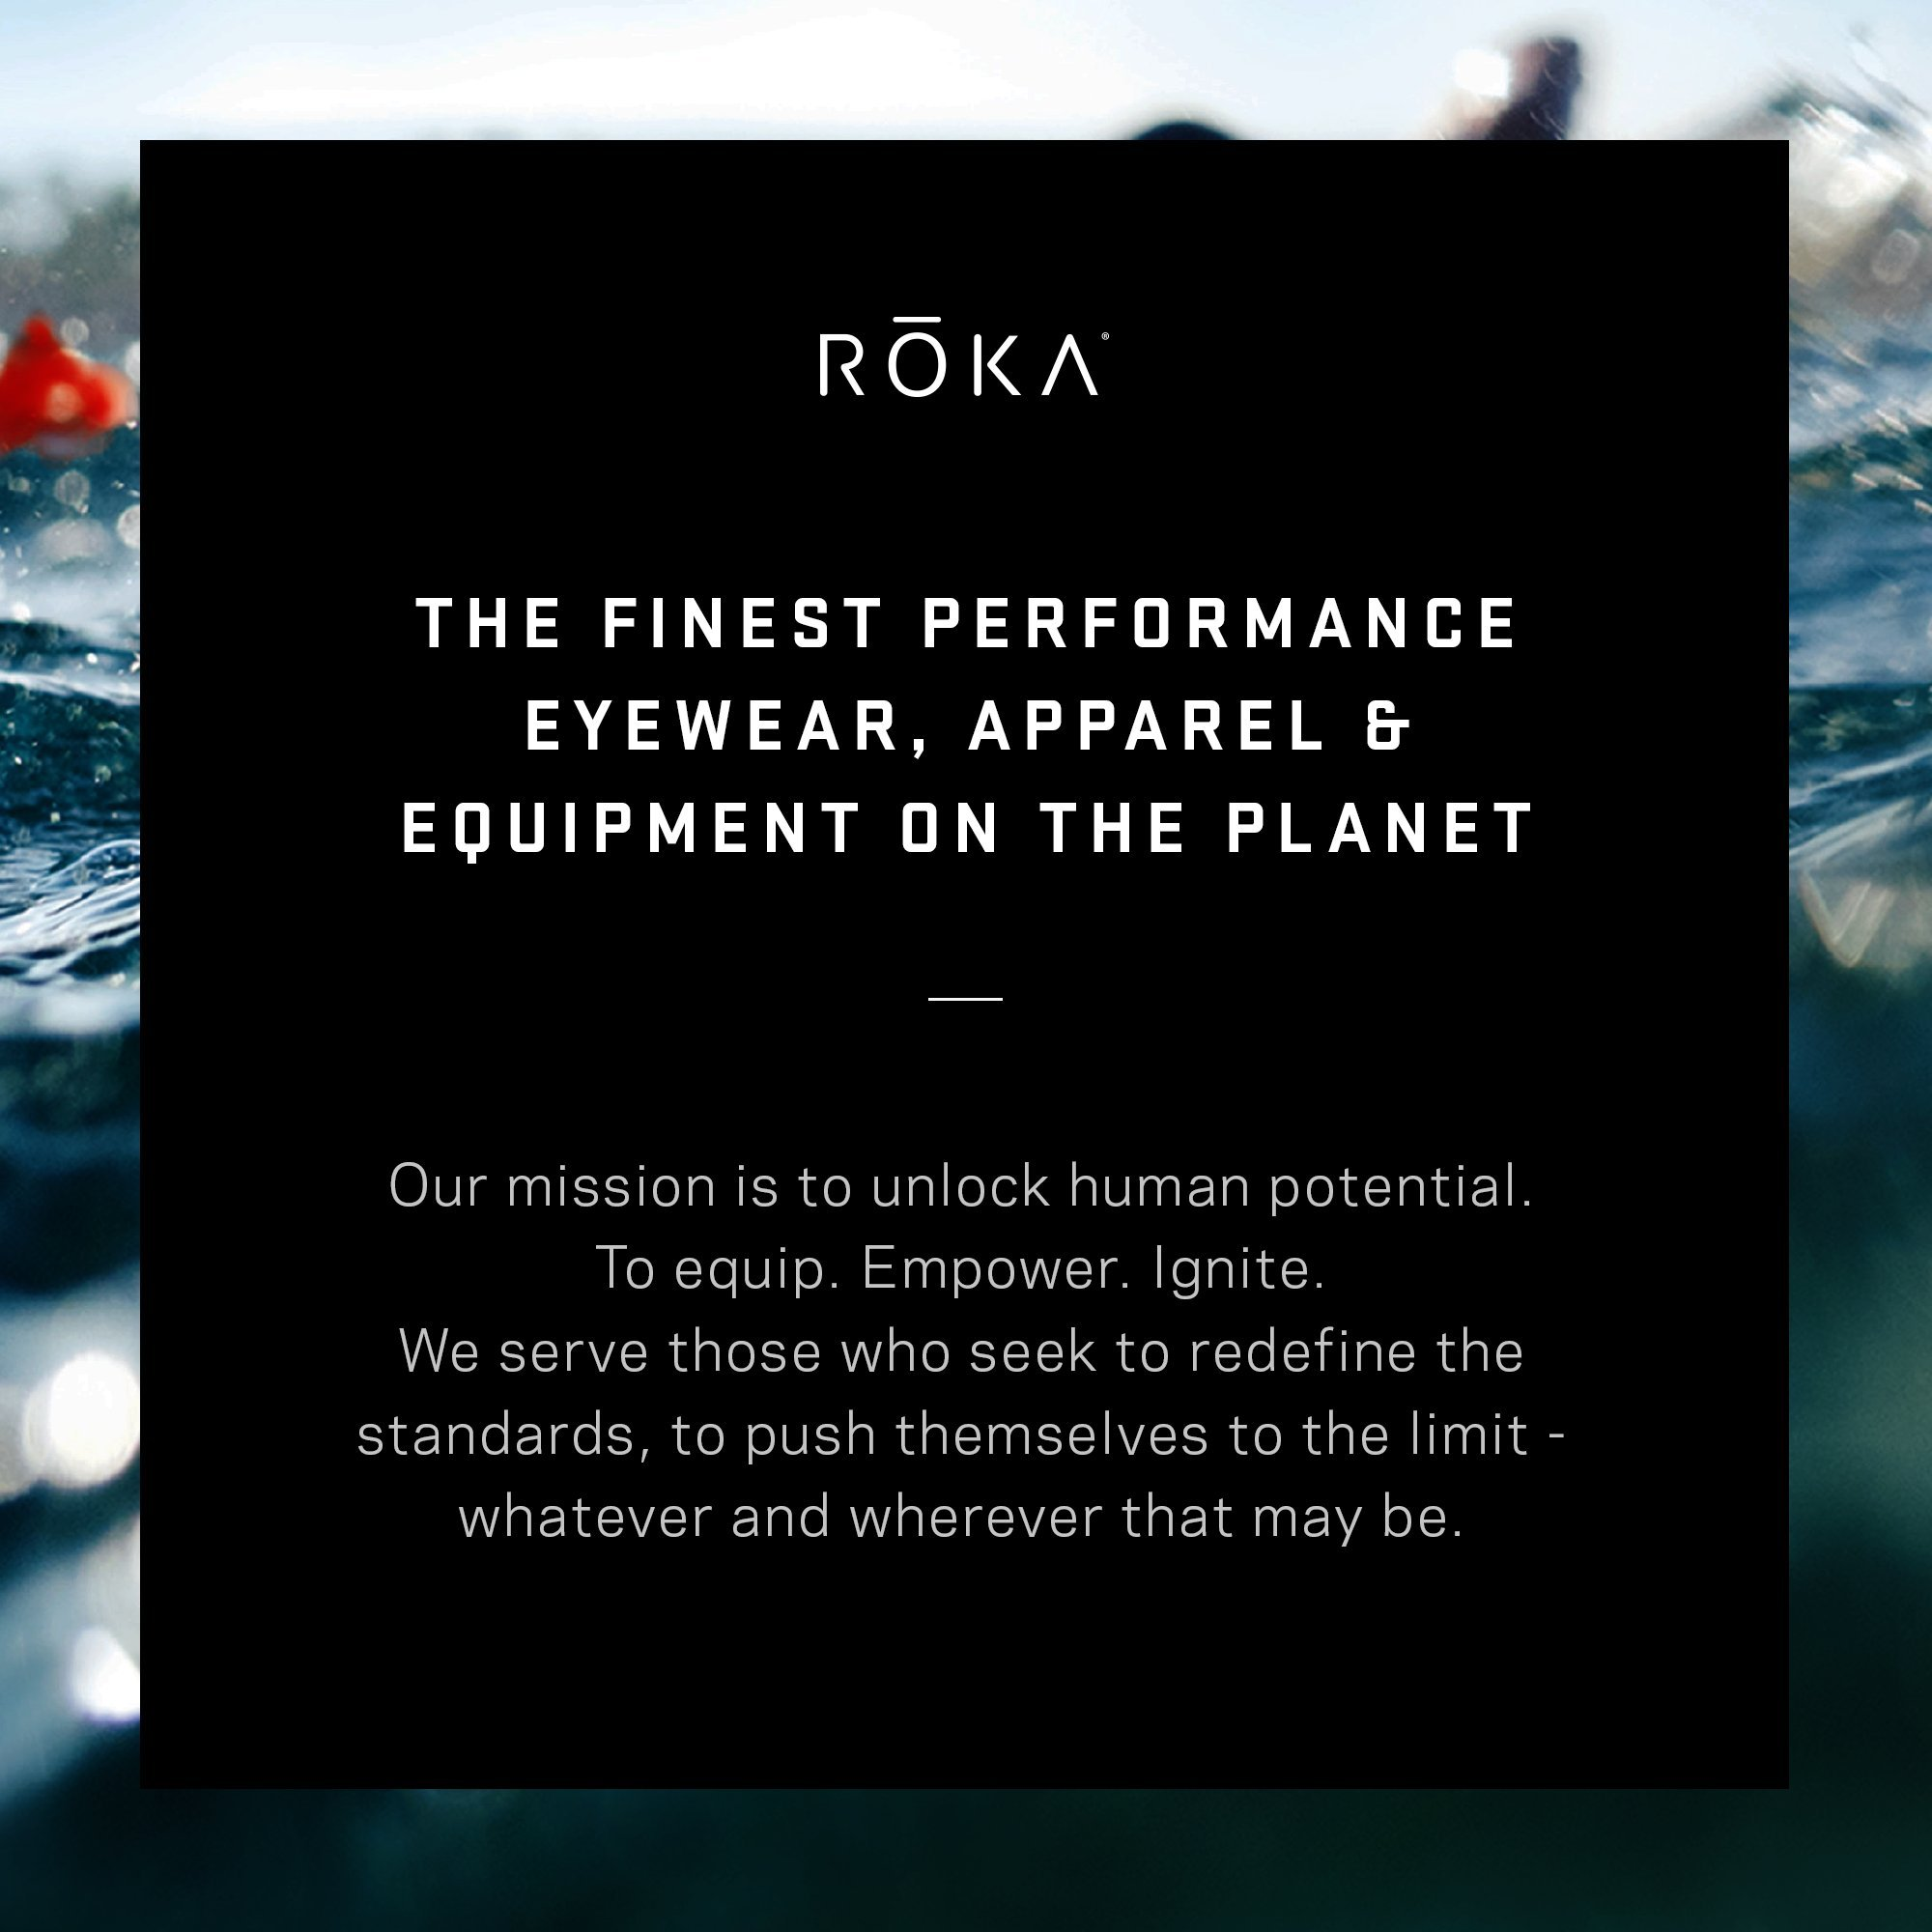 ROKA Maverick Comp II Men's Wetsuit for Swimming and Triathlons - Black/Cyan - Extra Large (XL) by ROKA (Image #6)